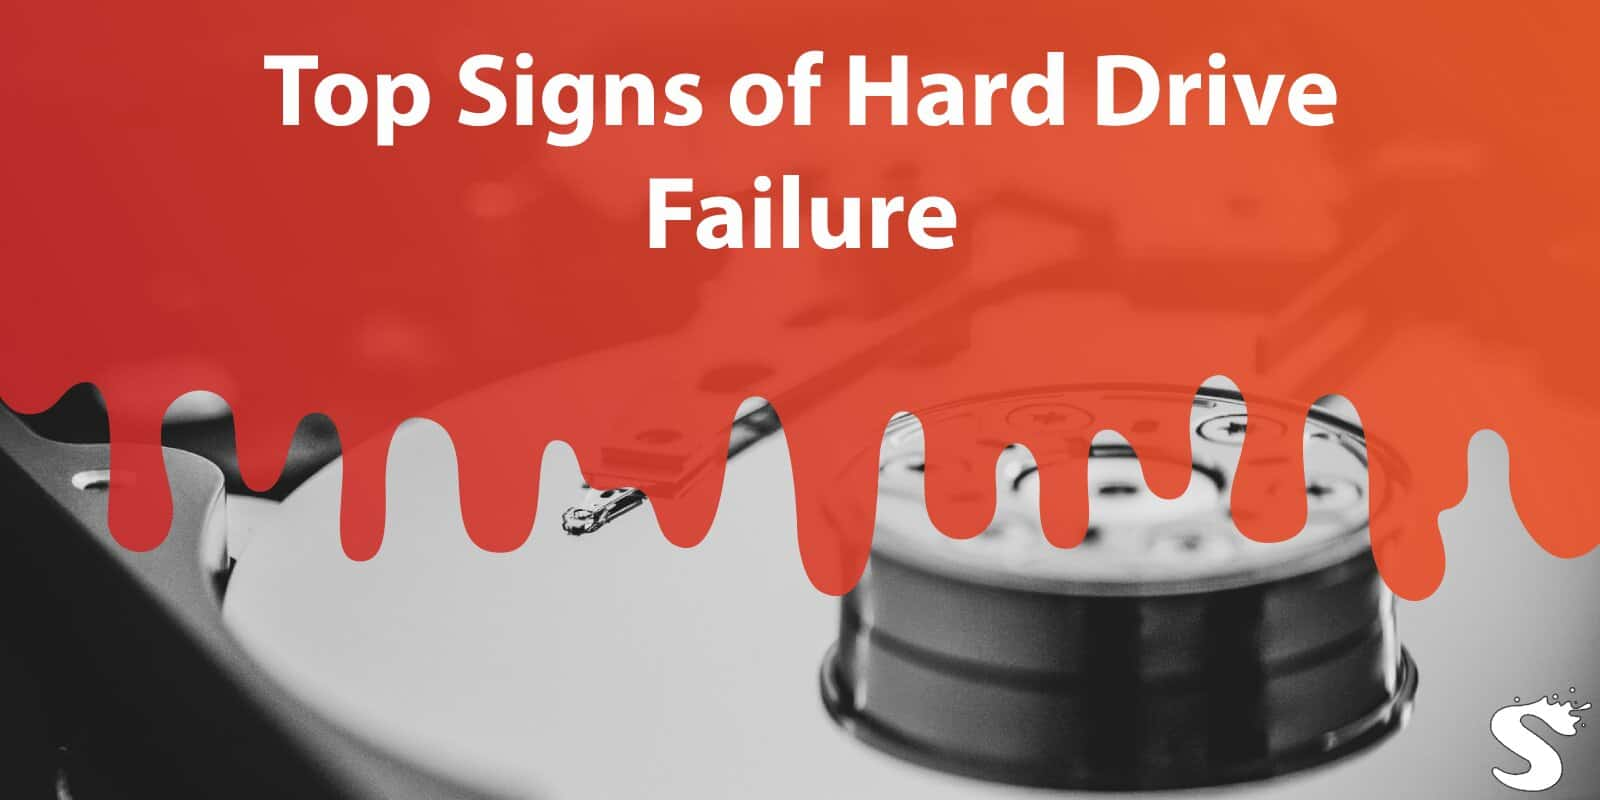 Top Signs of Hard Drive Failure